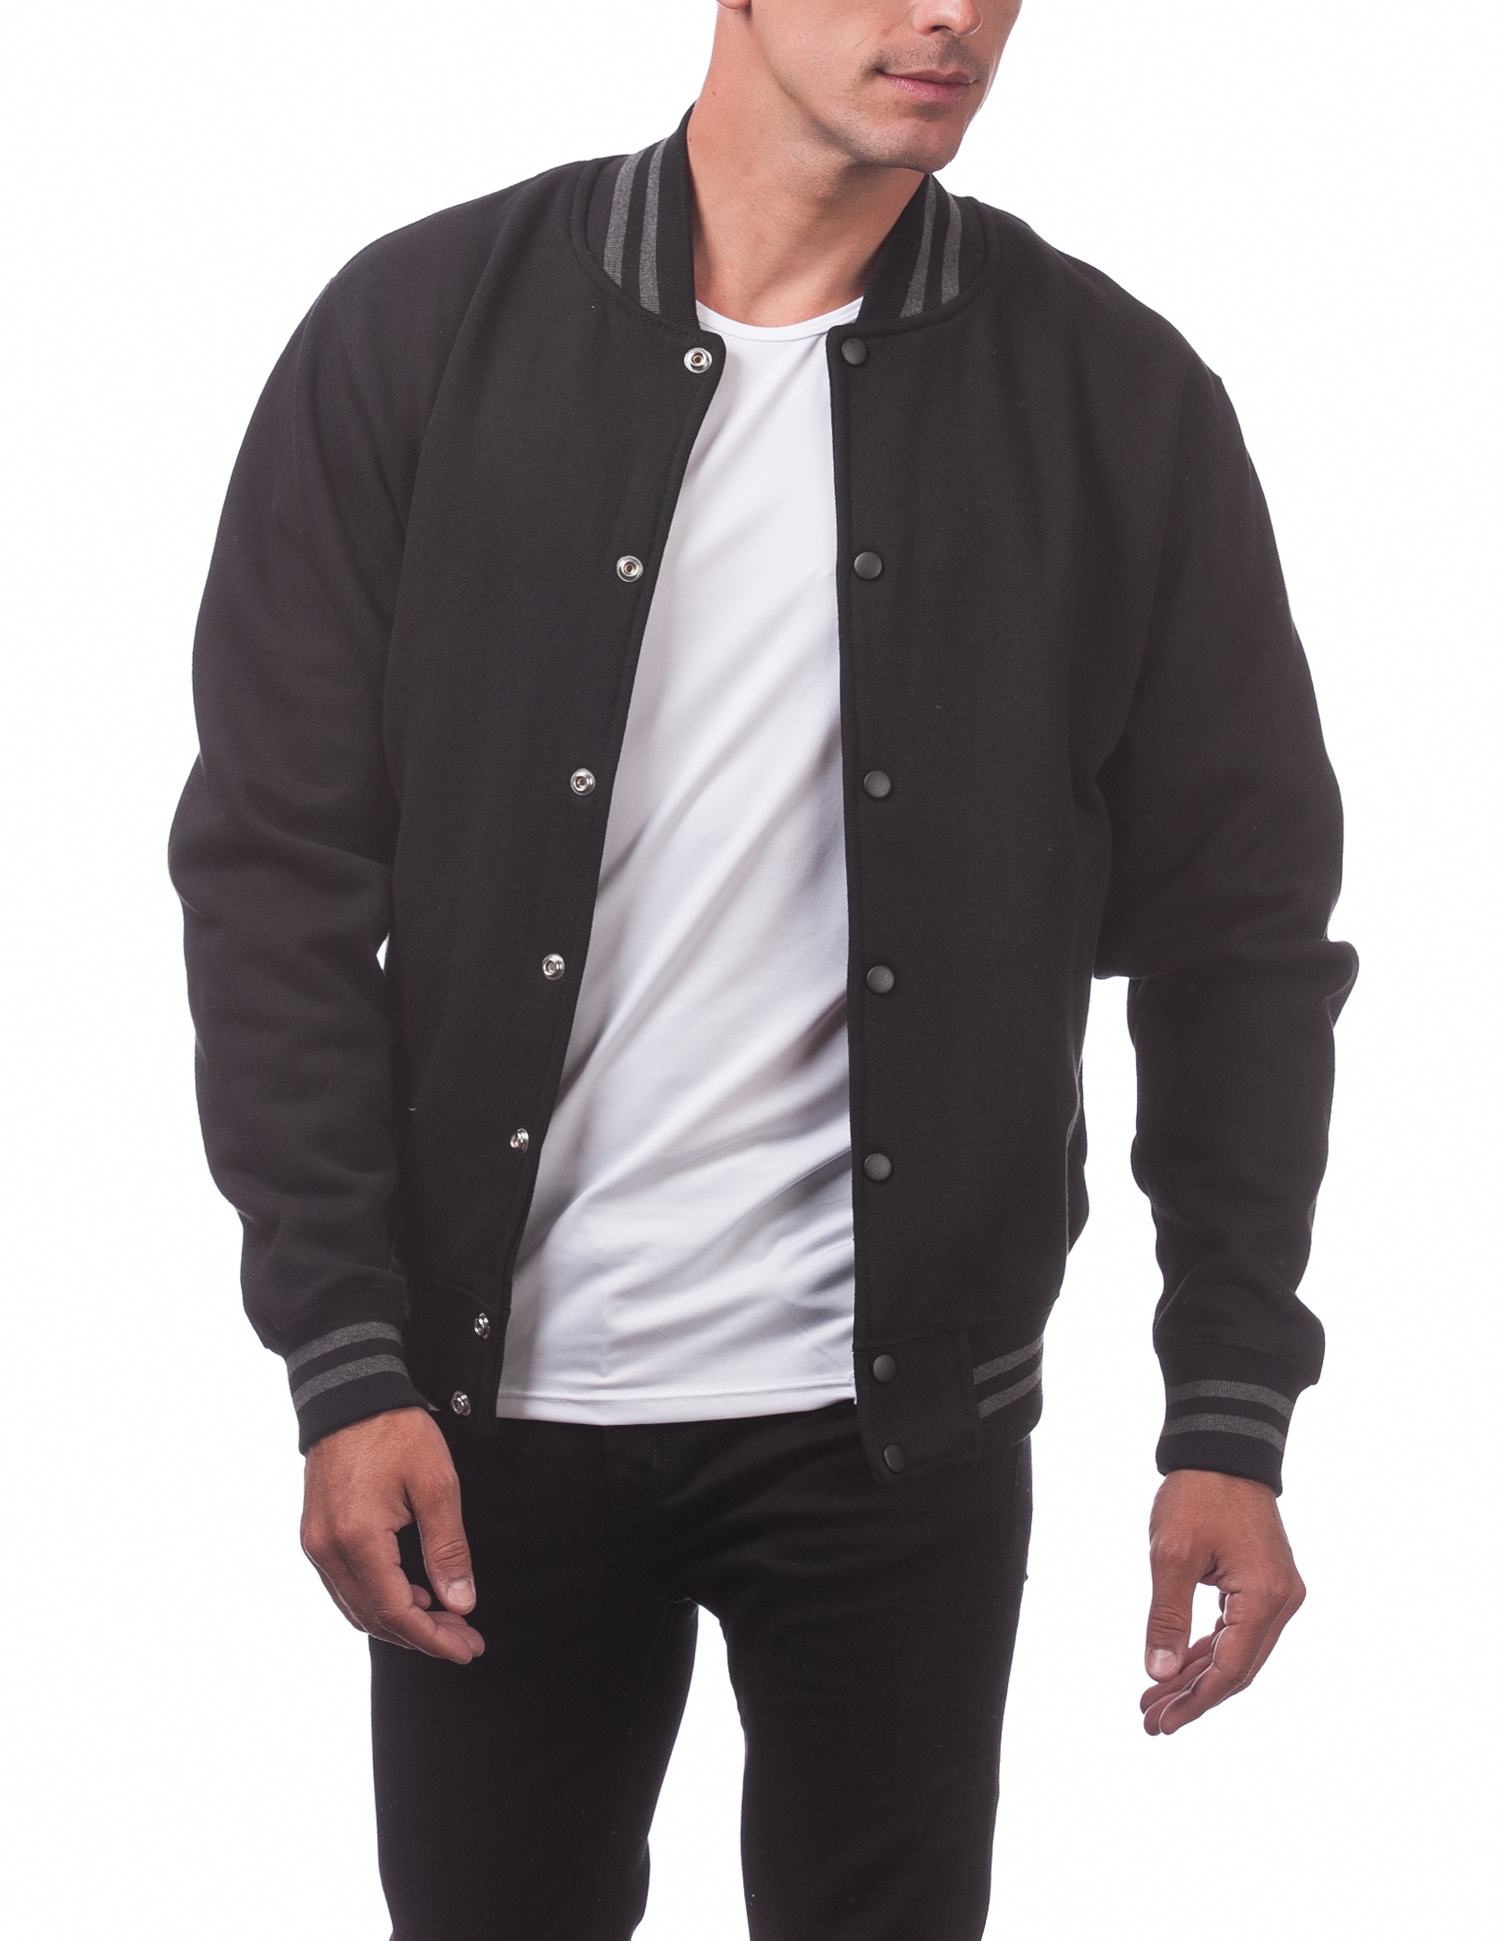 124 Black Black Men S Varsity Fleece Baseball Jacket